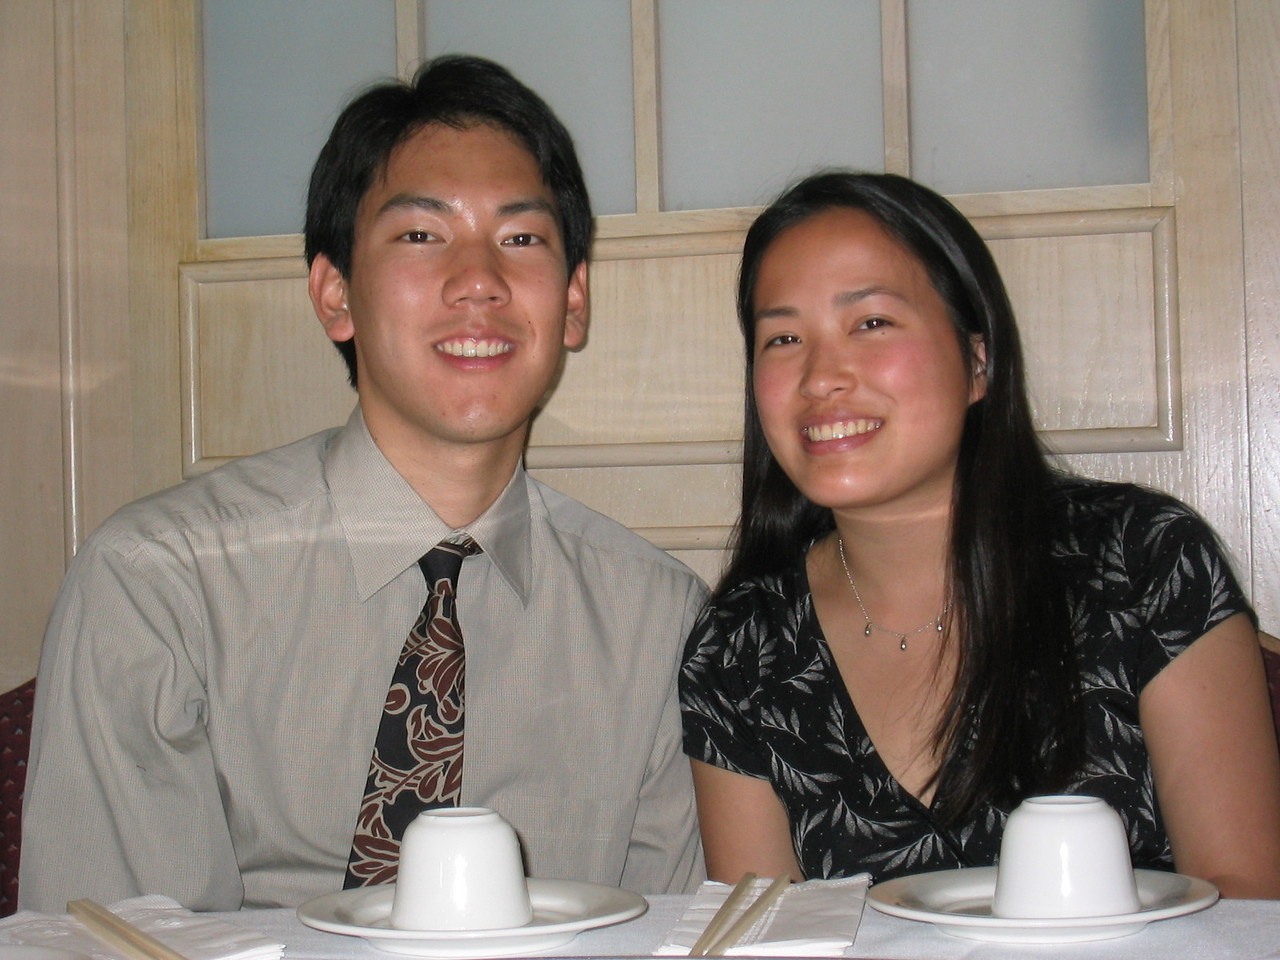 Erick and Jessica both with long hair